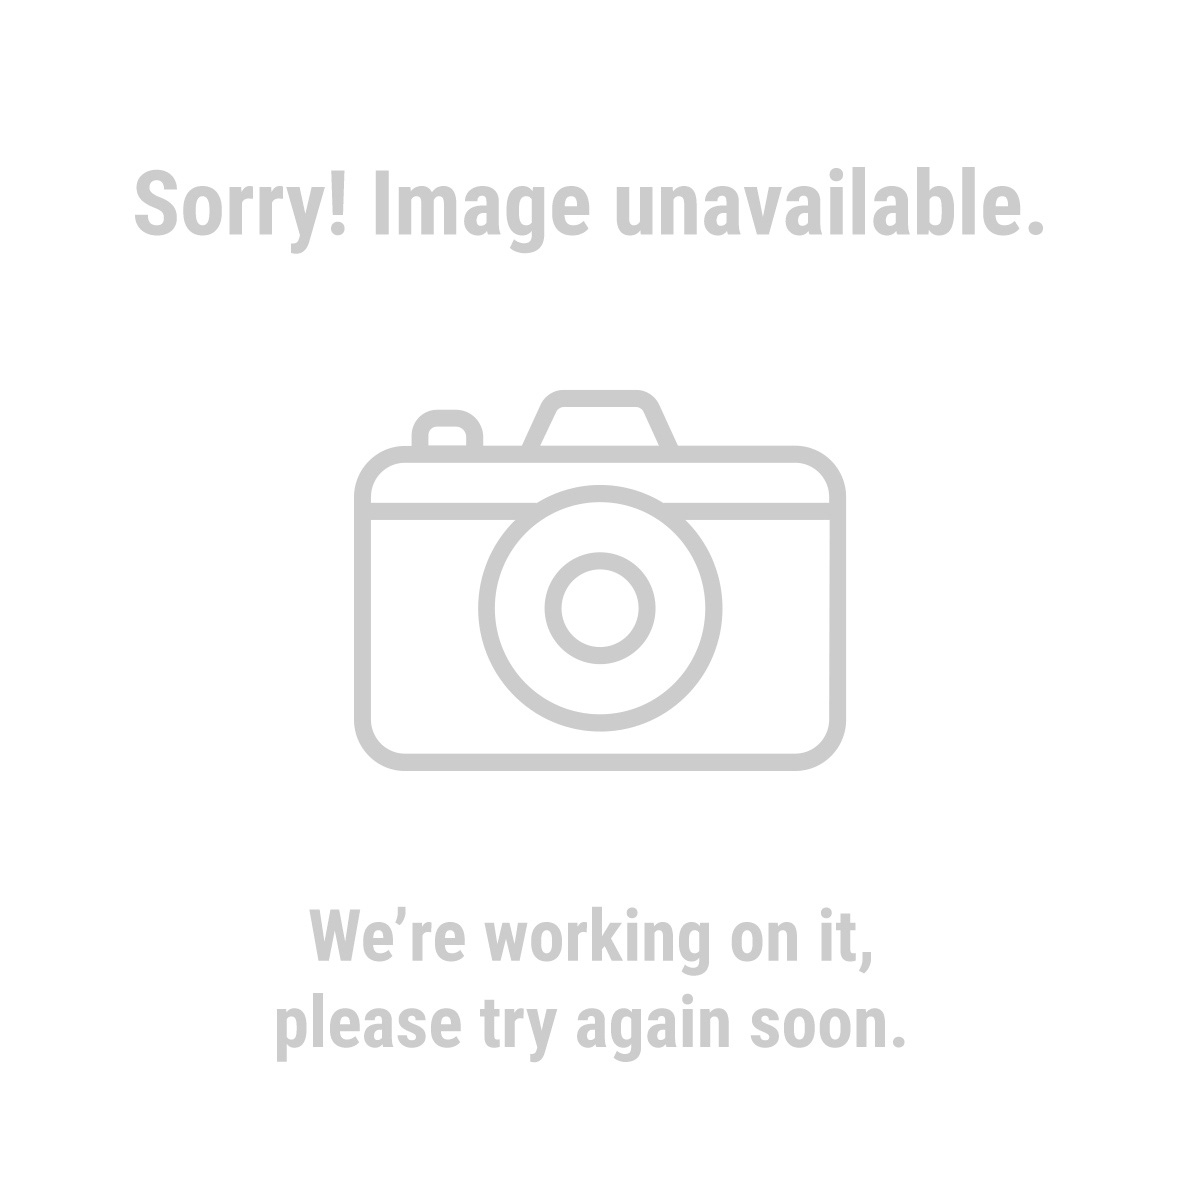 Badland Winches 62596 9000 lb. Off-Road Vehicle Electric Winch with Automatic Load-Holding Brake